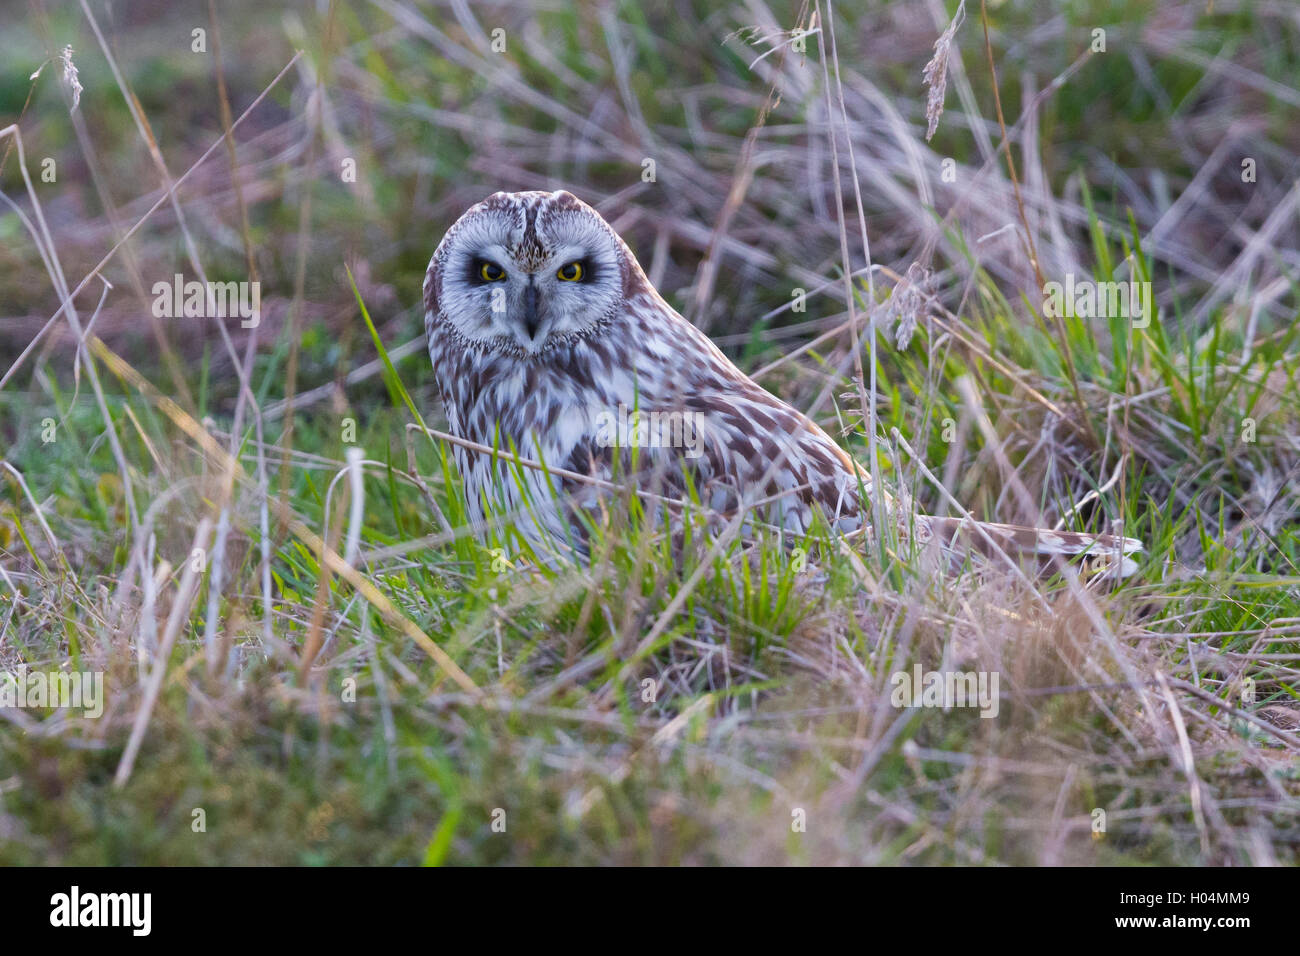 Short-eared Owl (Asio flammeus), adult sitting on the ground - Stock Image